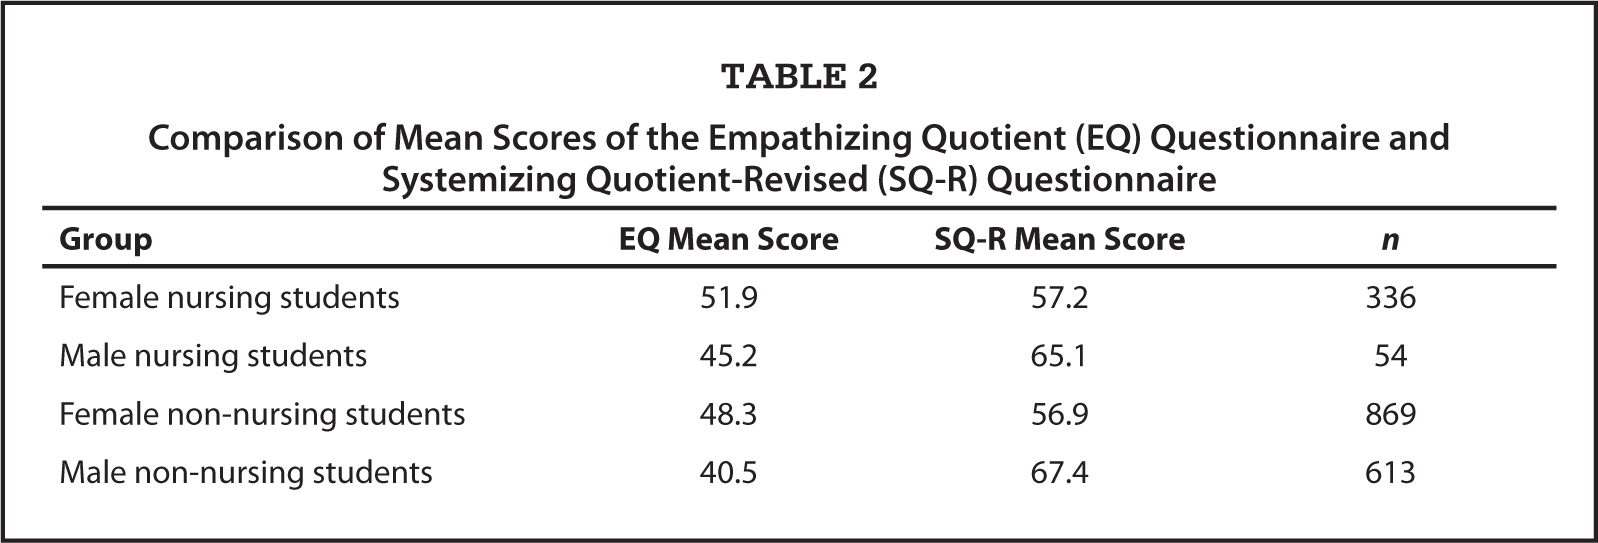 Comparison of Mean Scores of the Empathizing Quotient (EQ) Questionnaire and Systemizing Quotient-Revised (SQ-R) Questionnaire